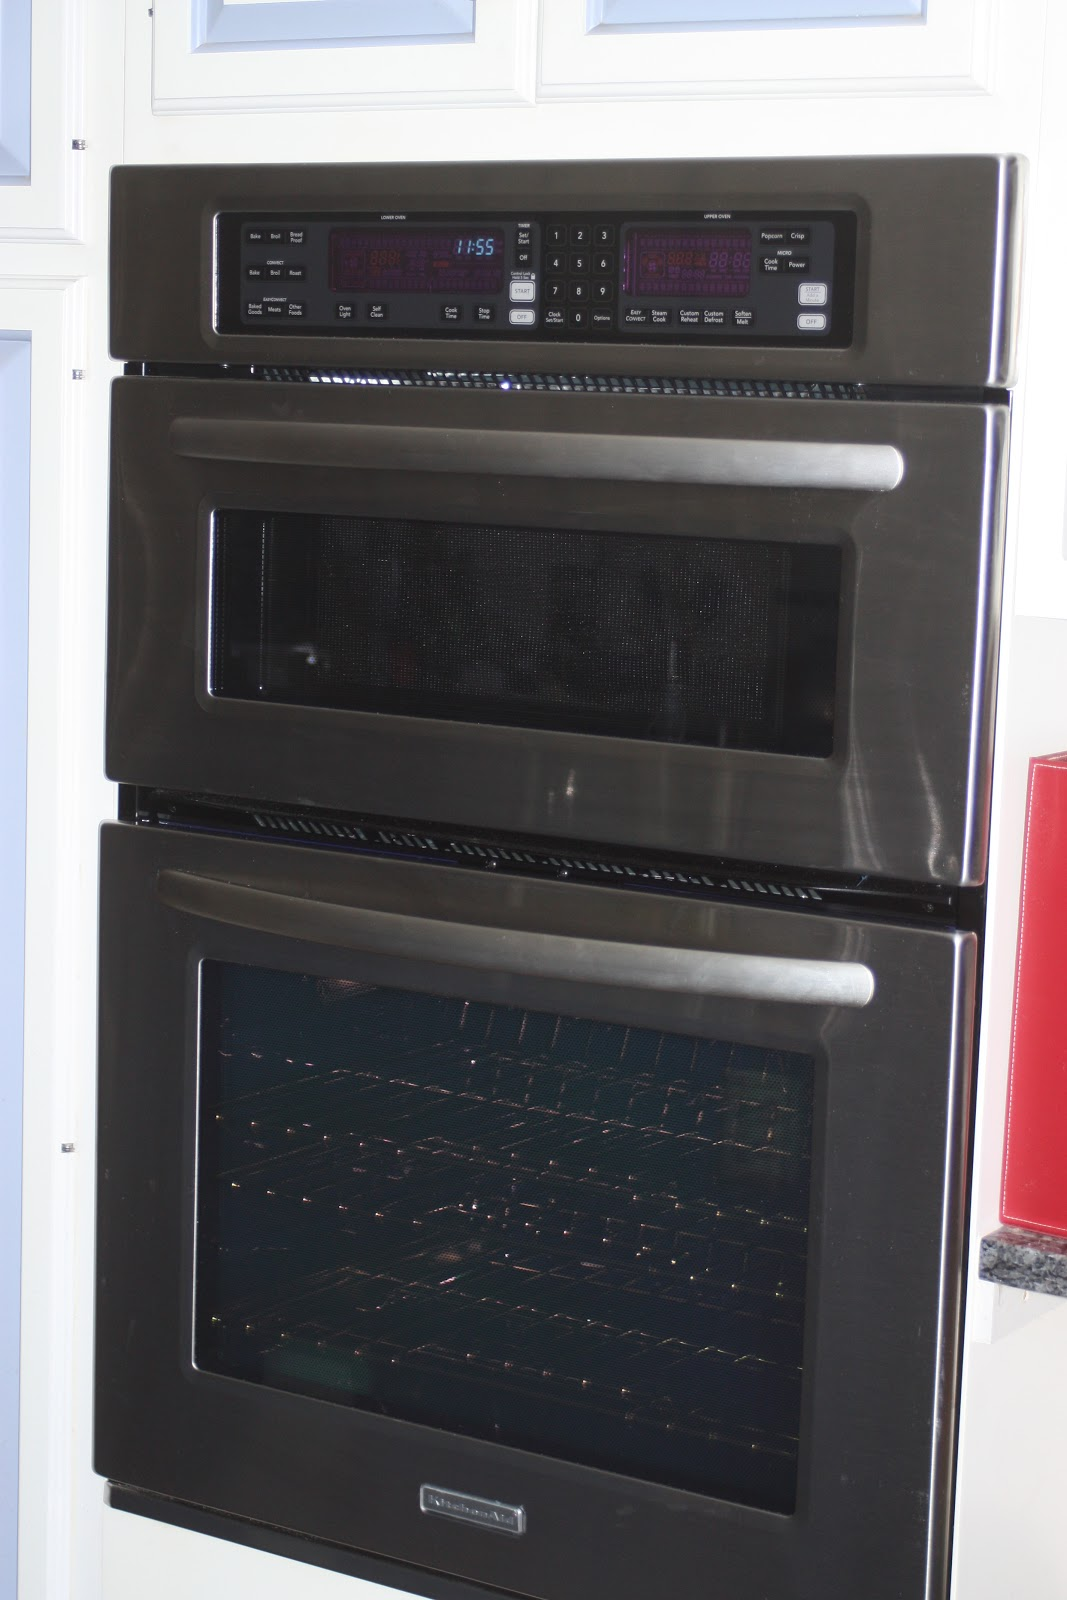 cuisinart convection microwave oven and grill manual